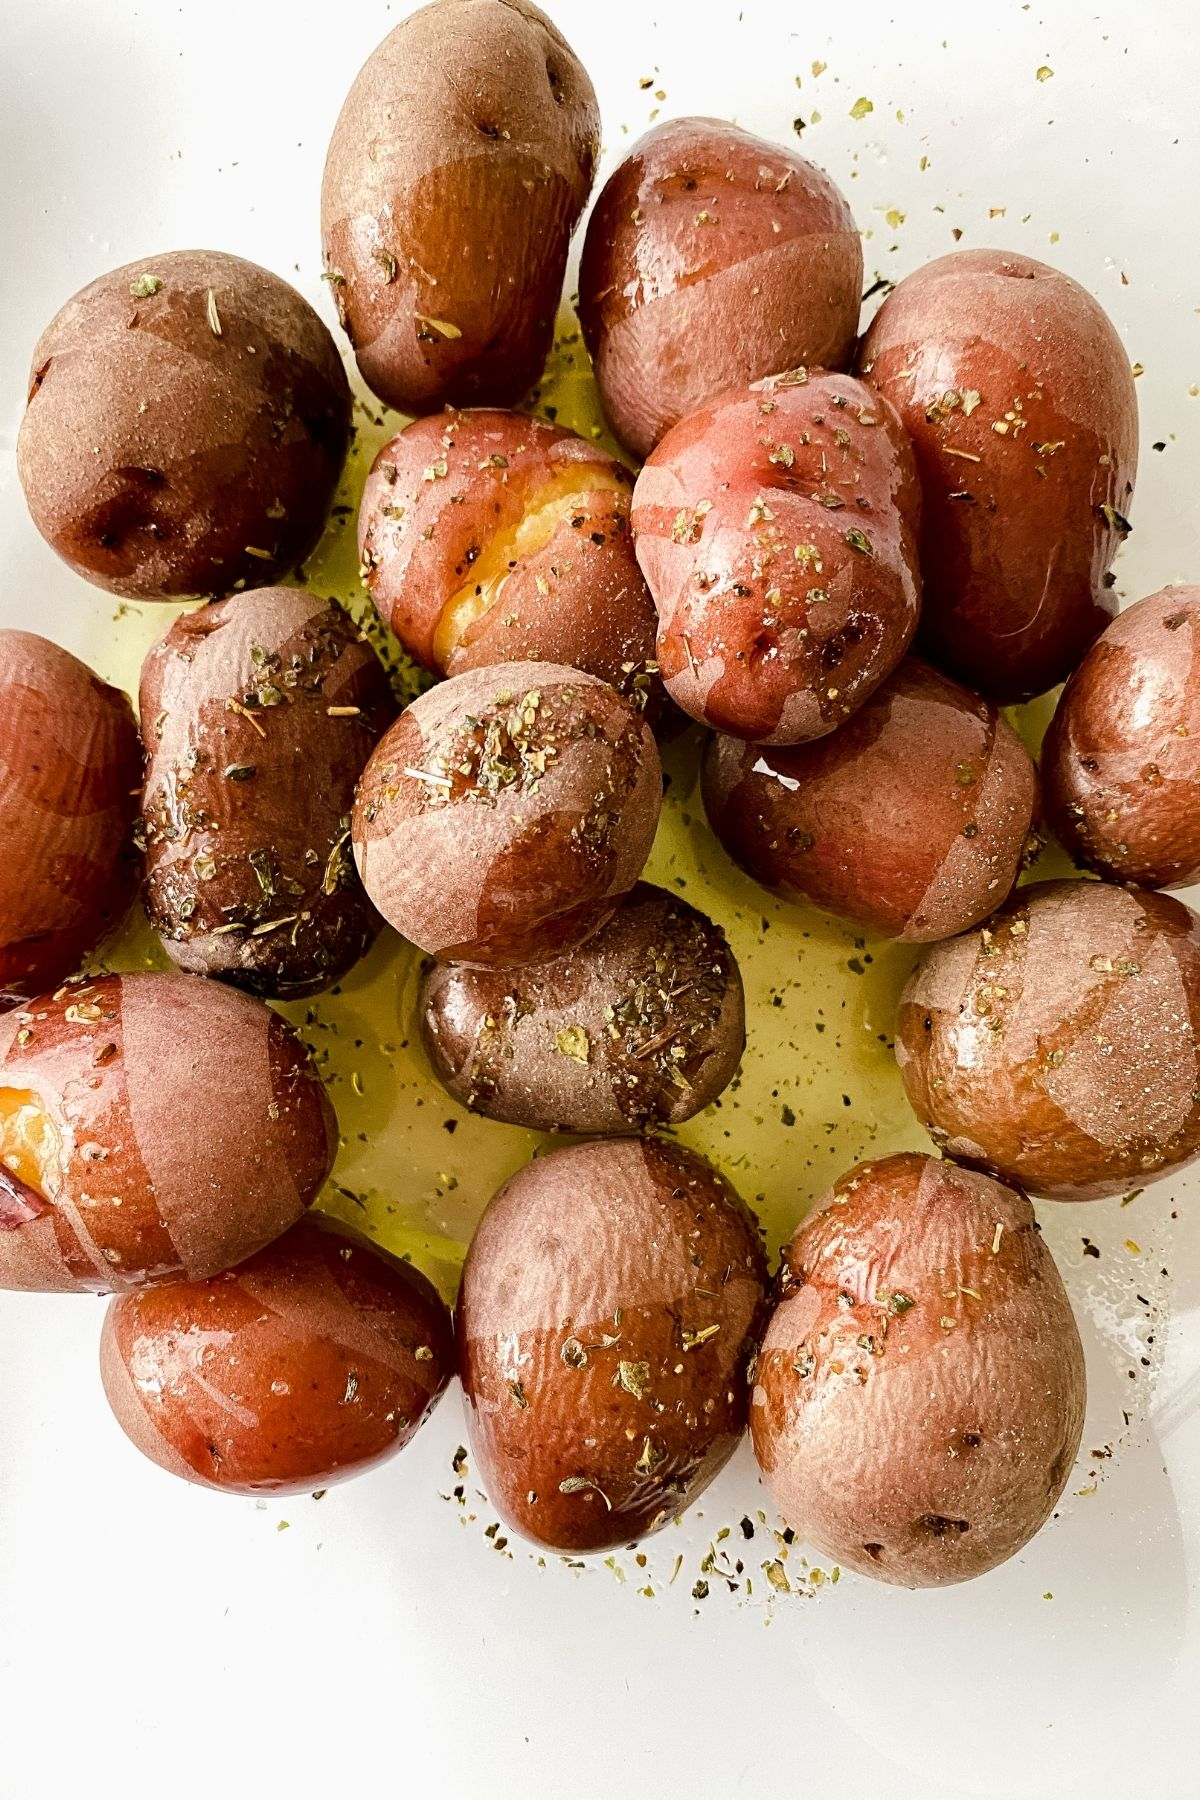 boiled red potatoes in bowl with olive oil and herbs